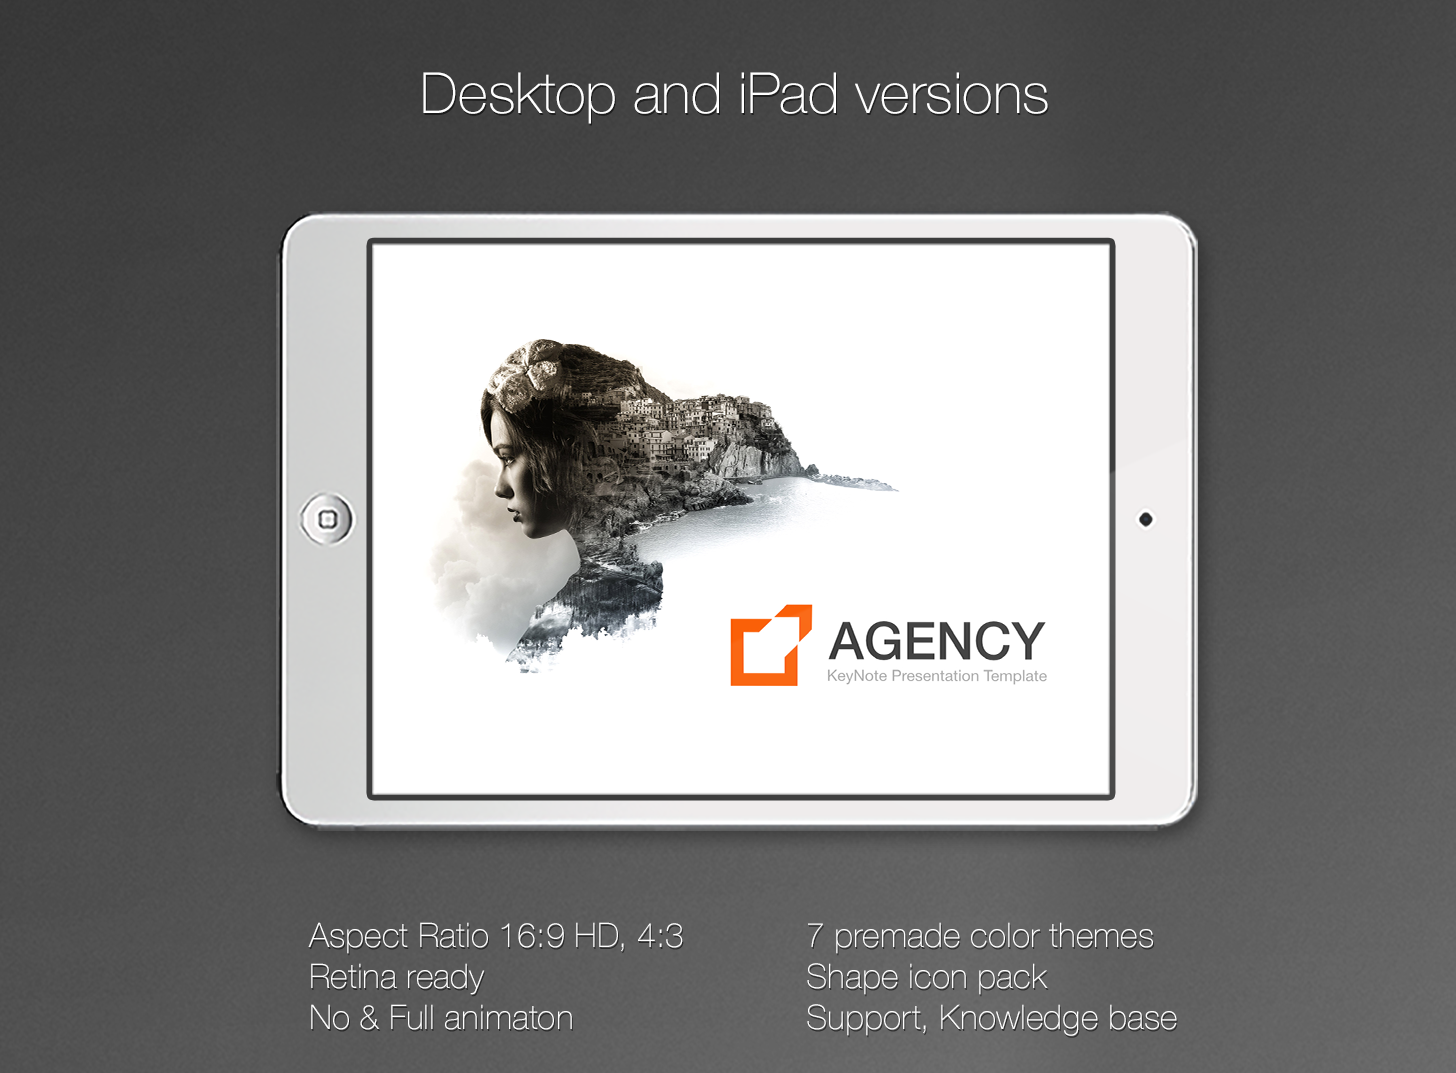 Agency powerpoint template download now agency powerpoint template toneelgroepblik Gallery